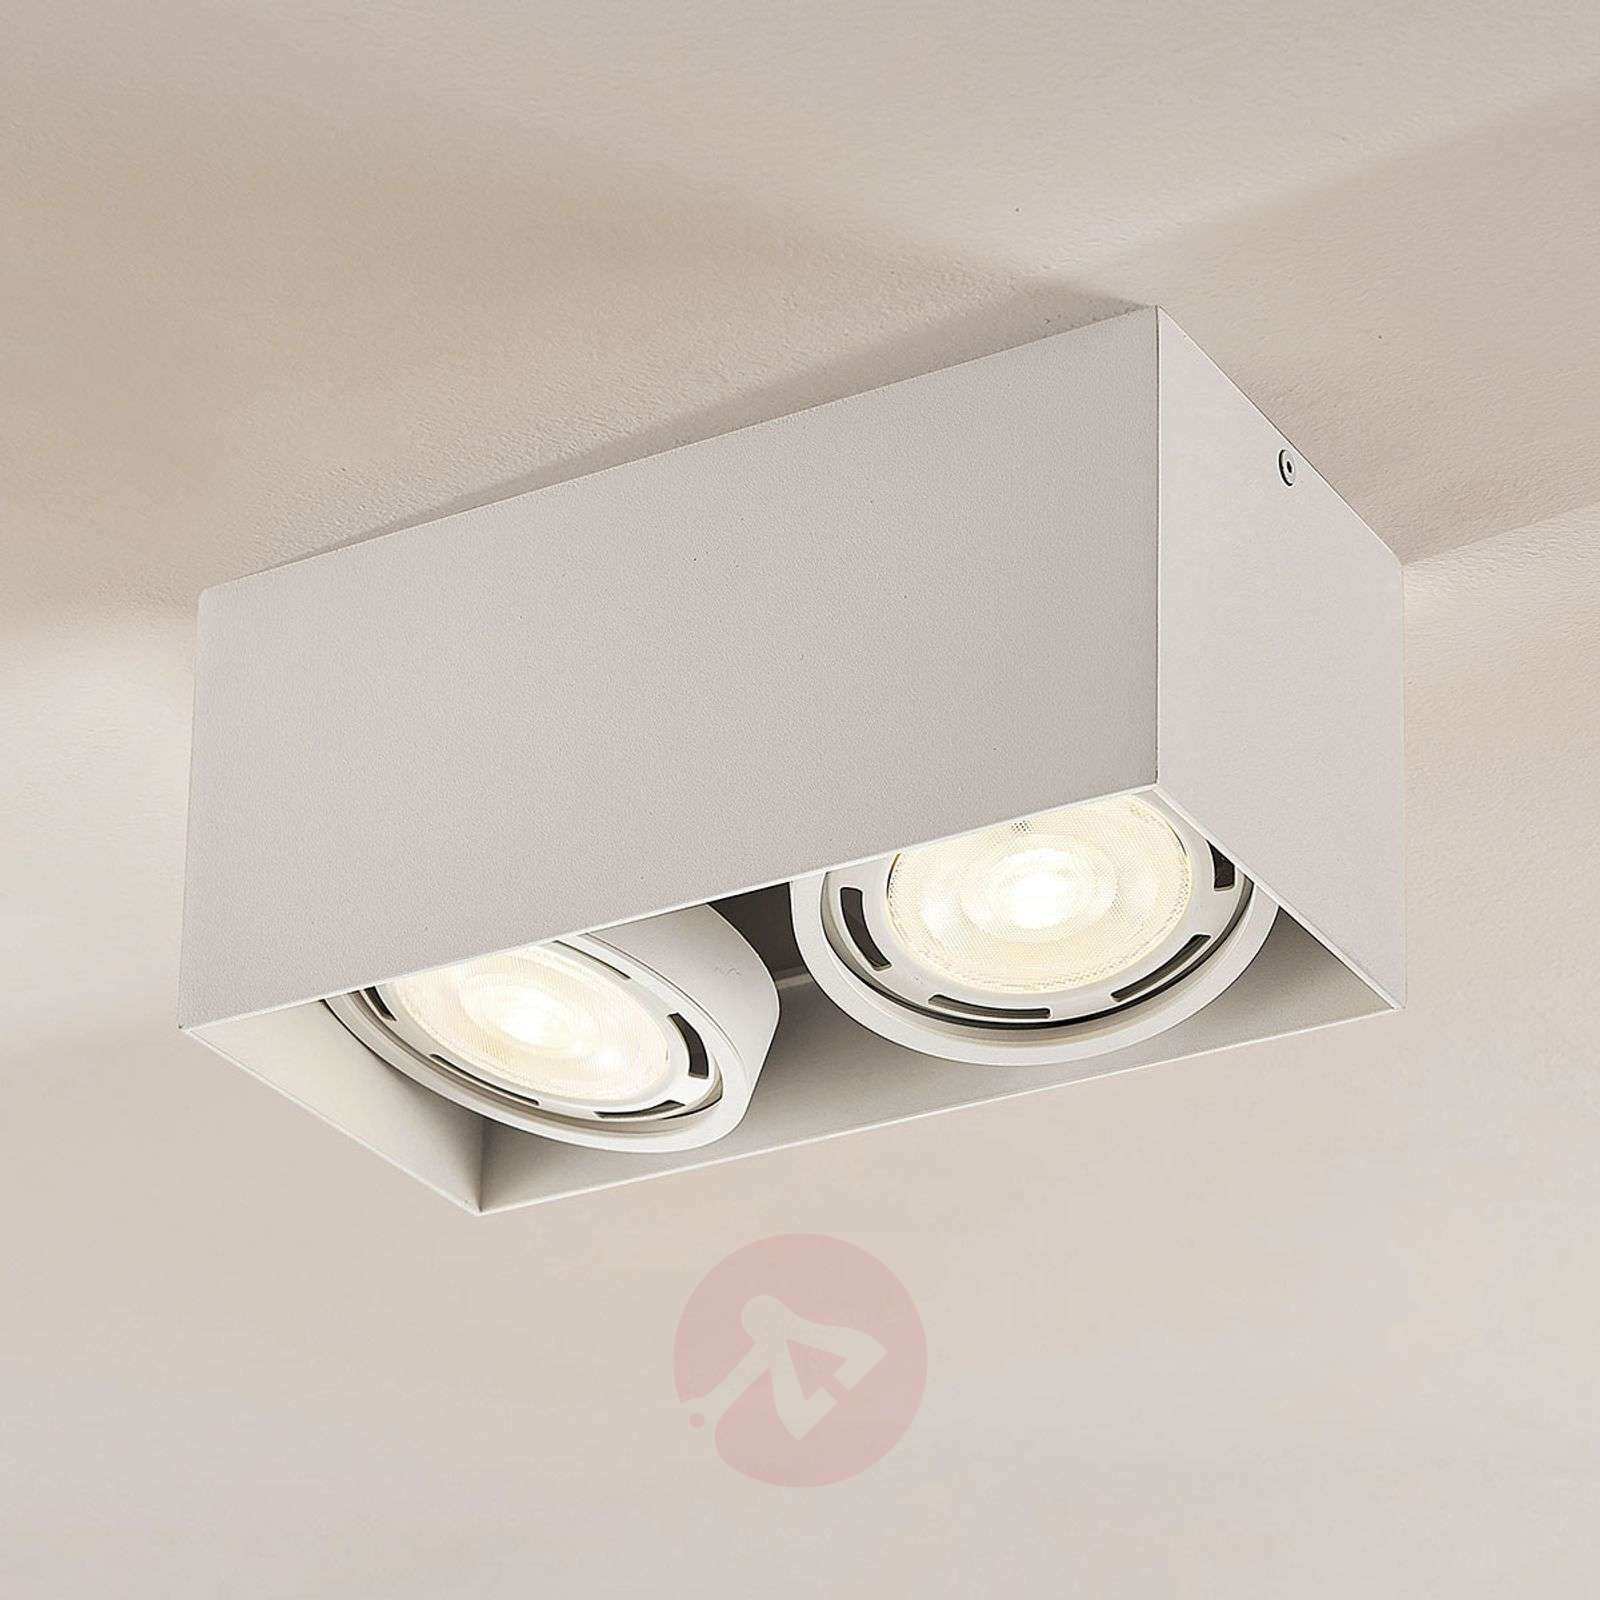 Downlight LED Rosalie, atenuable, 2 luces, blanco-9621909-02